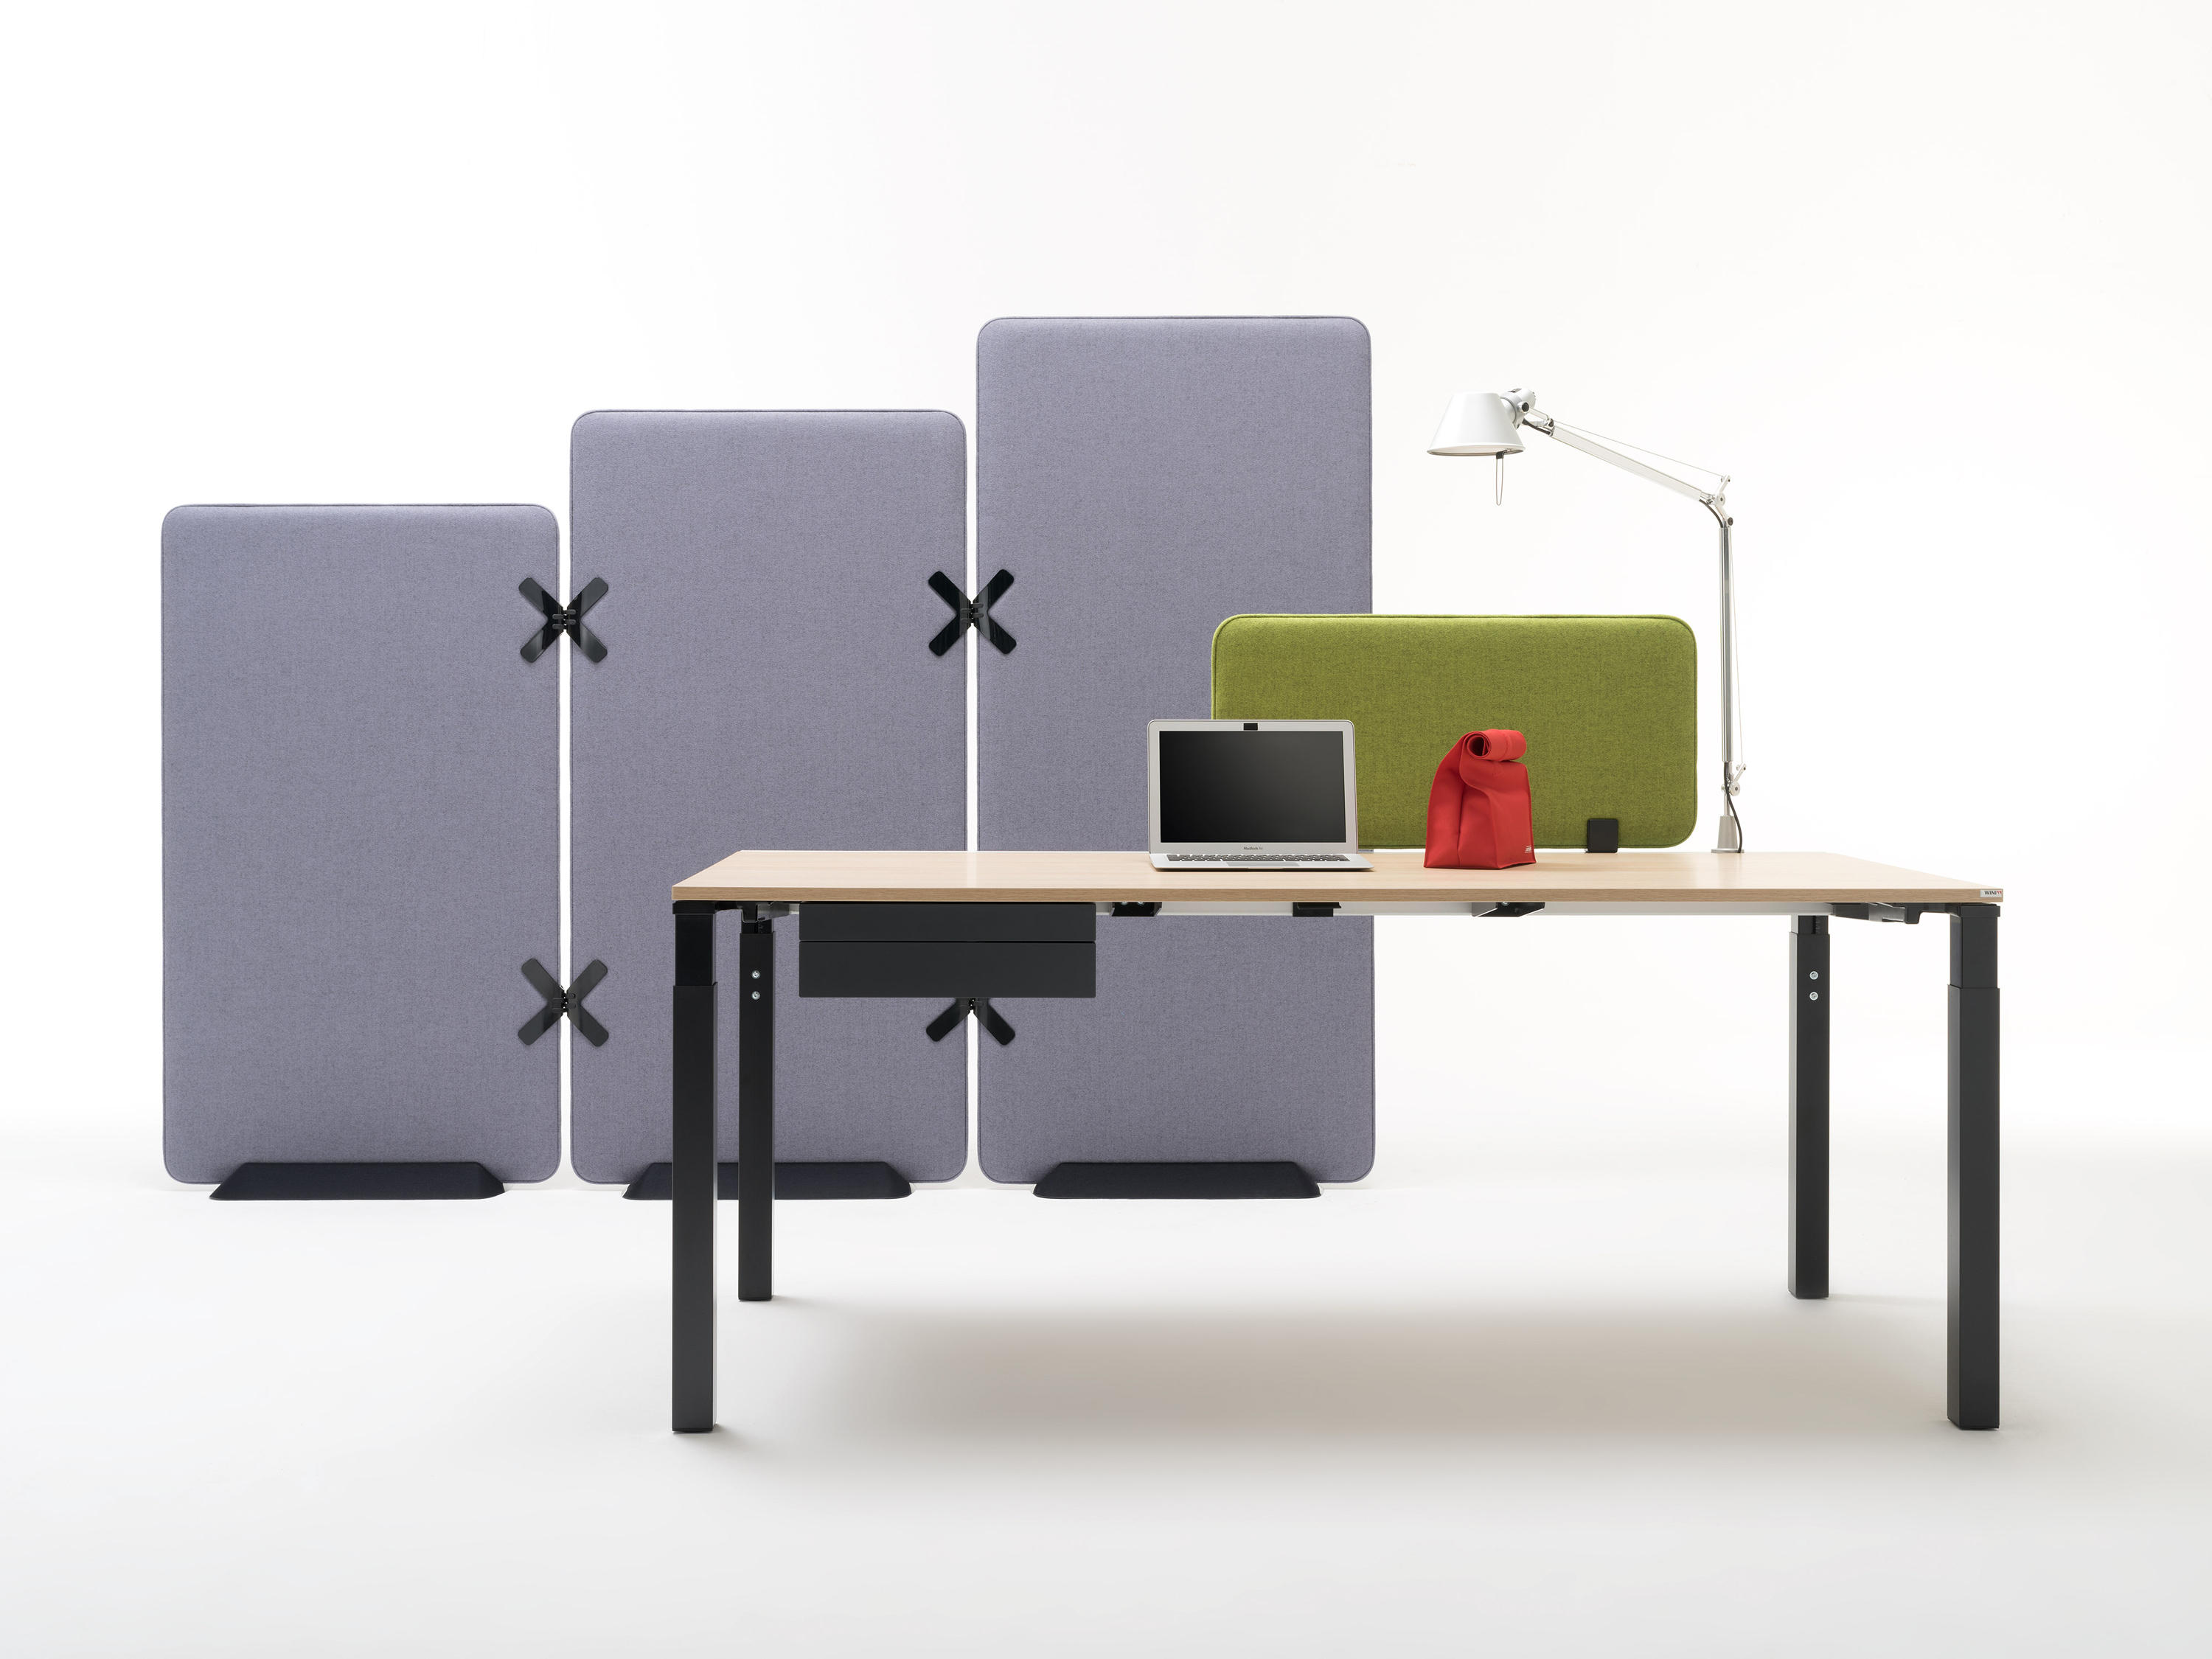 WINEA X | STANDING PANEL - Space dividers from WINI Büromöbel ...